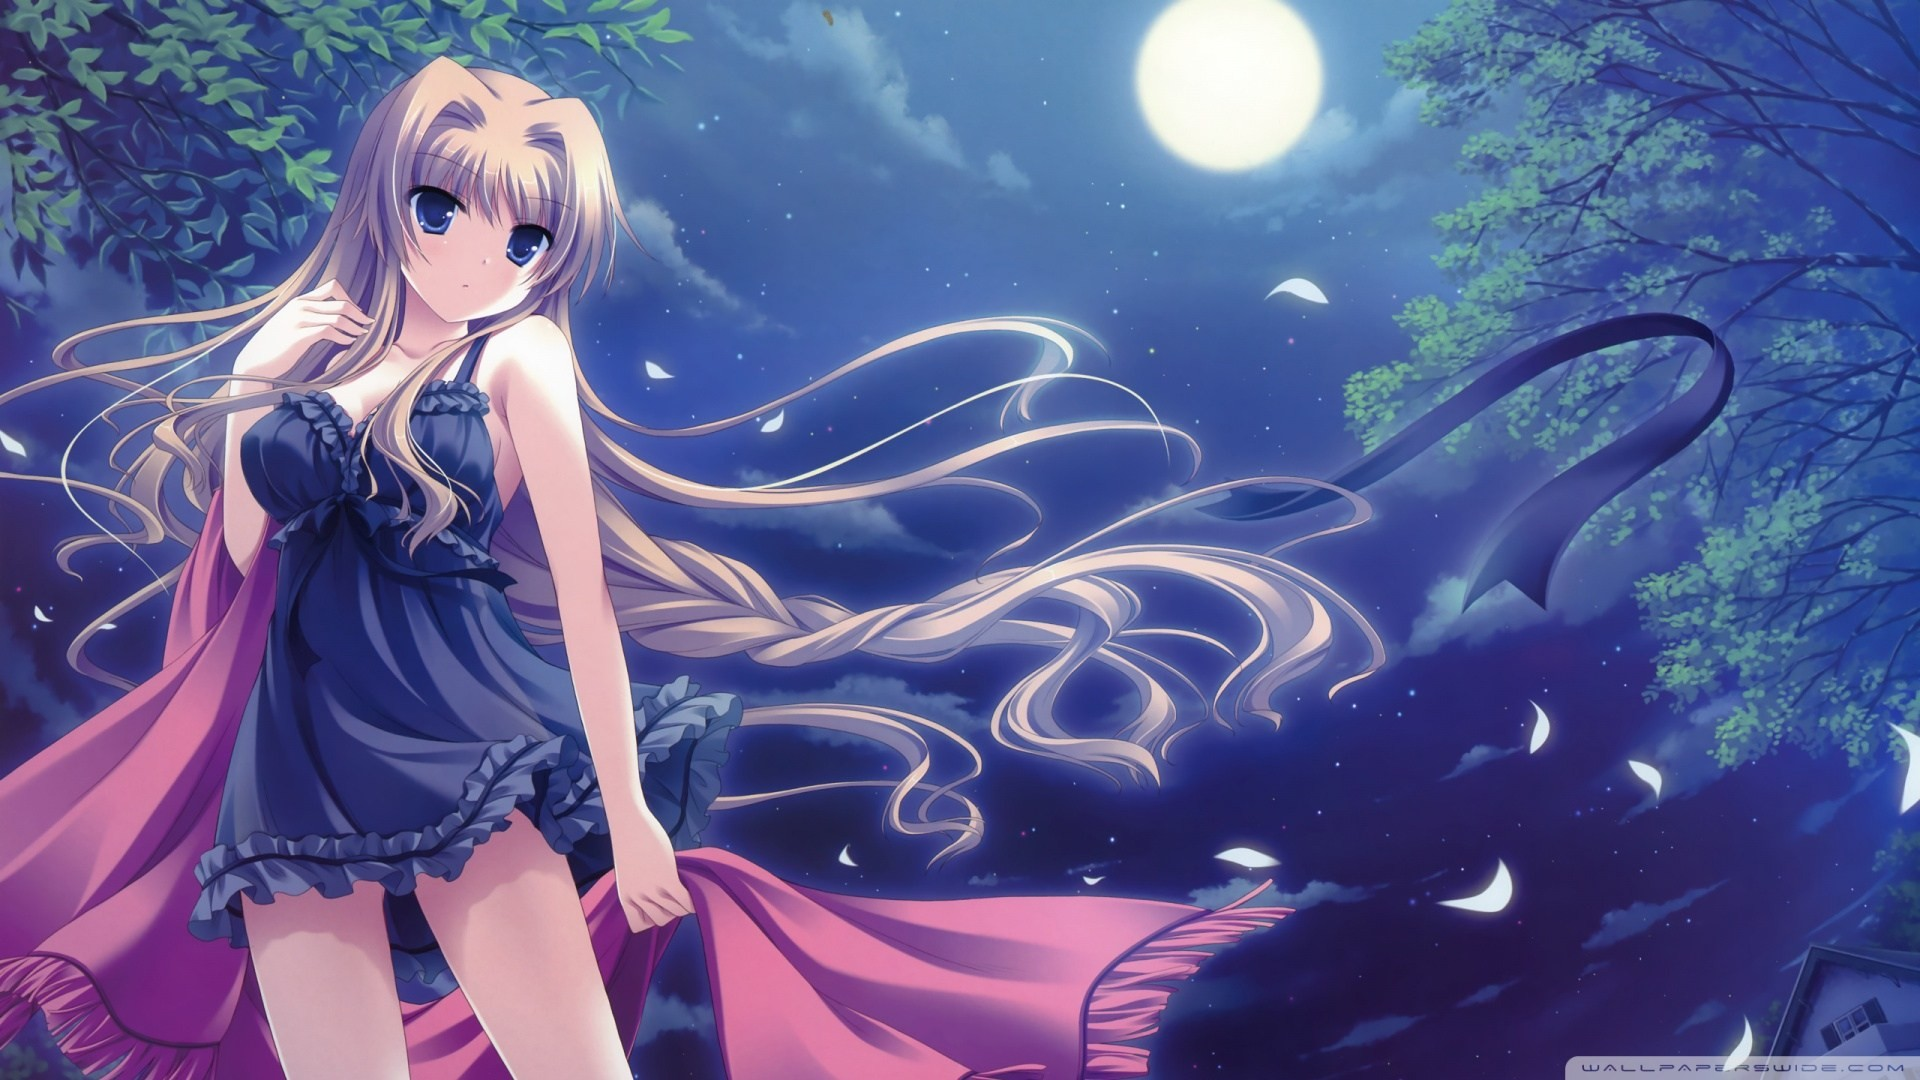 … Great 4K Pictures Anime Girl Wallpaper in Black Hd Wallpaper- you can  download Anime Girl